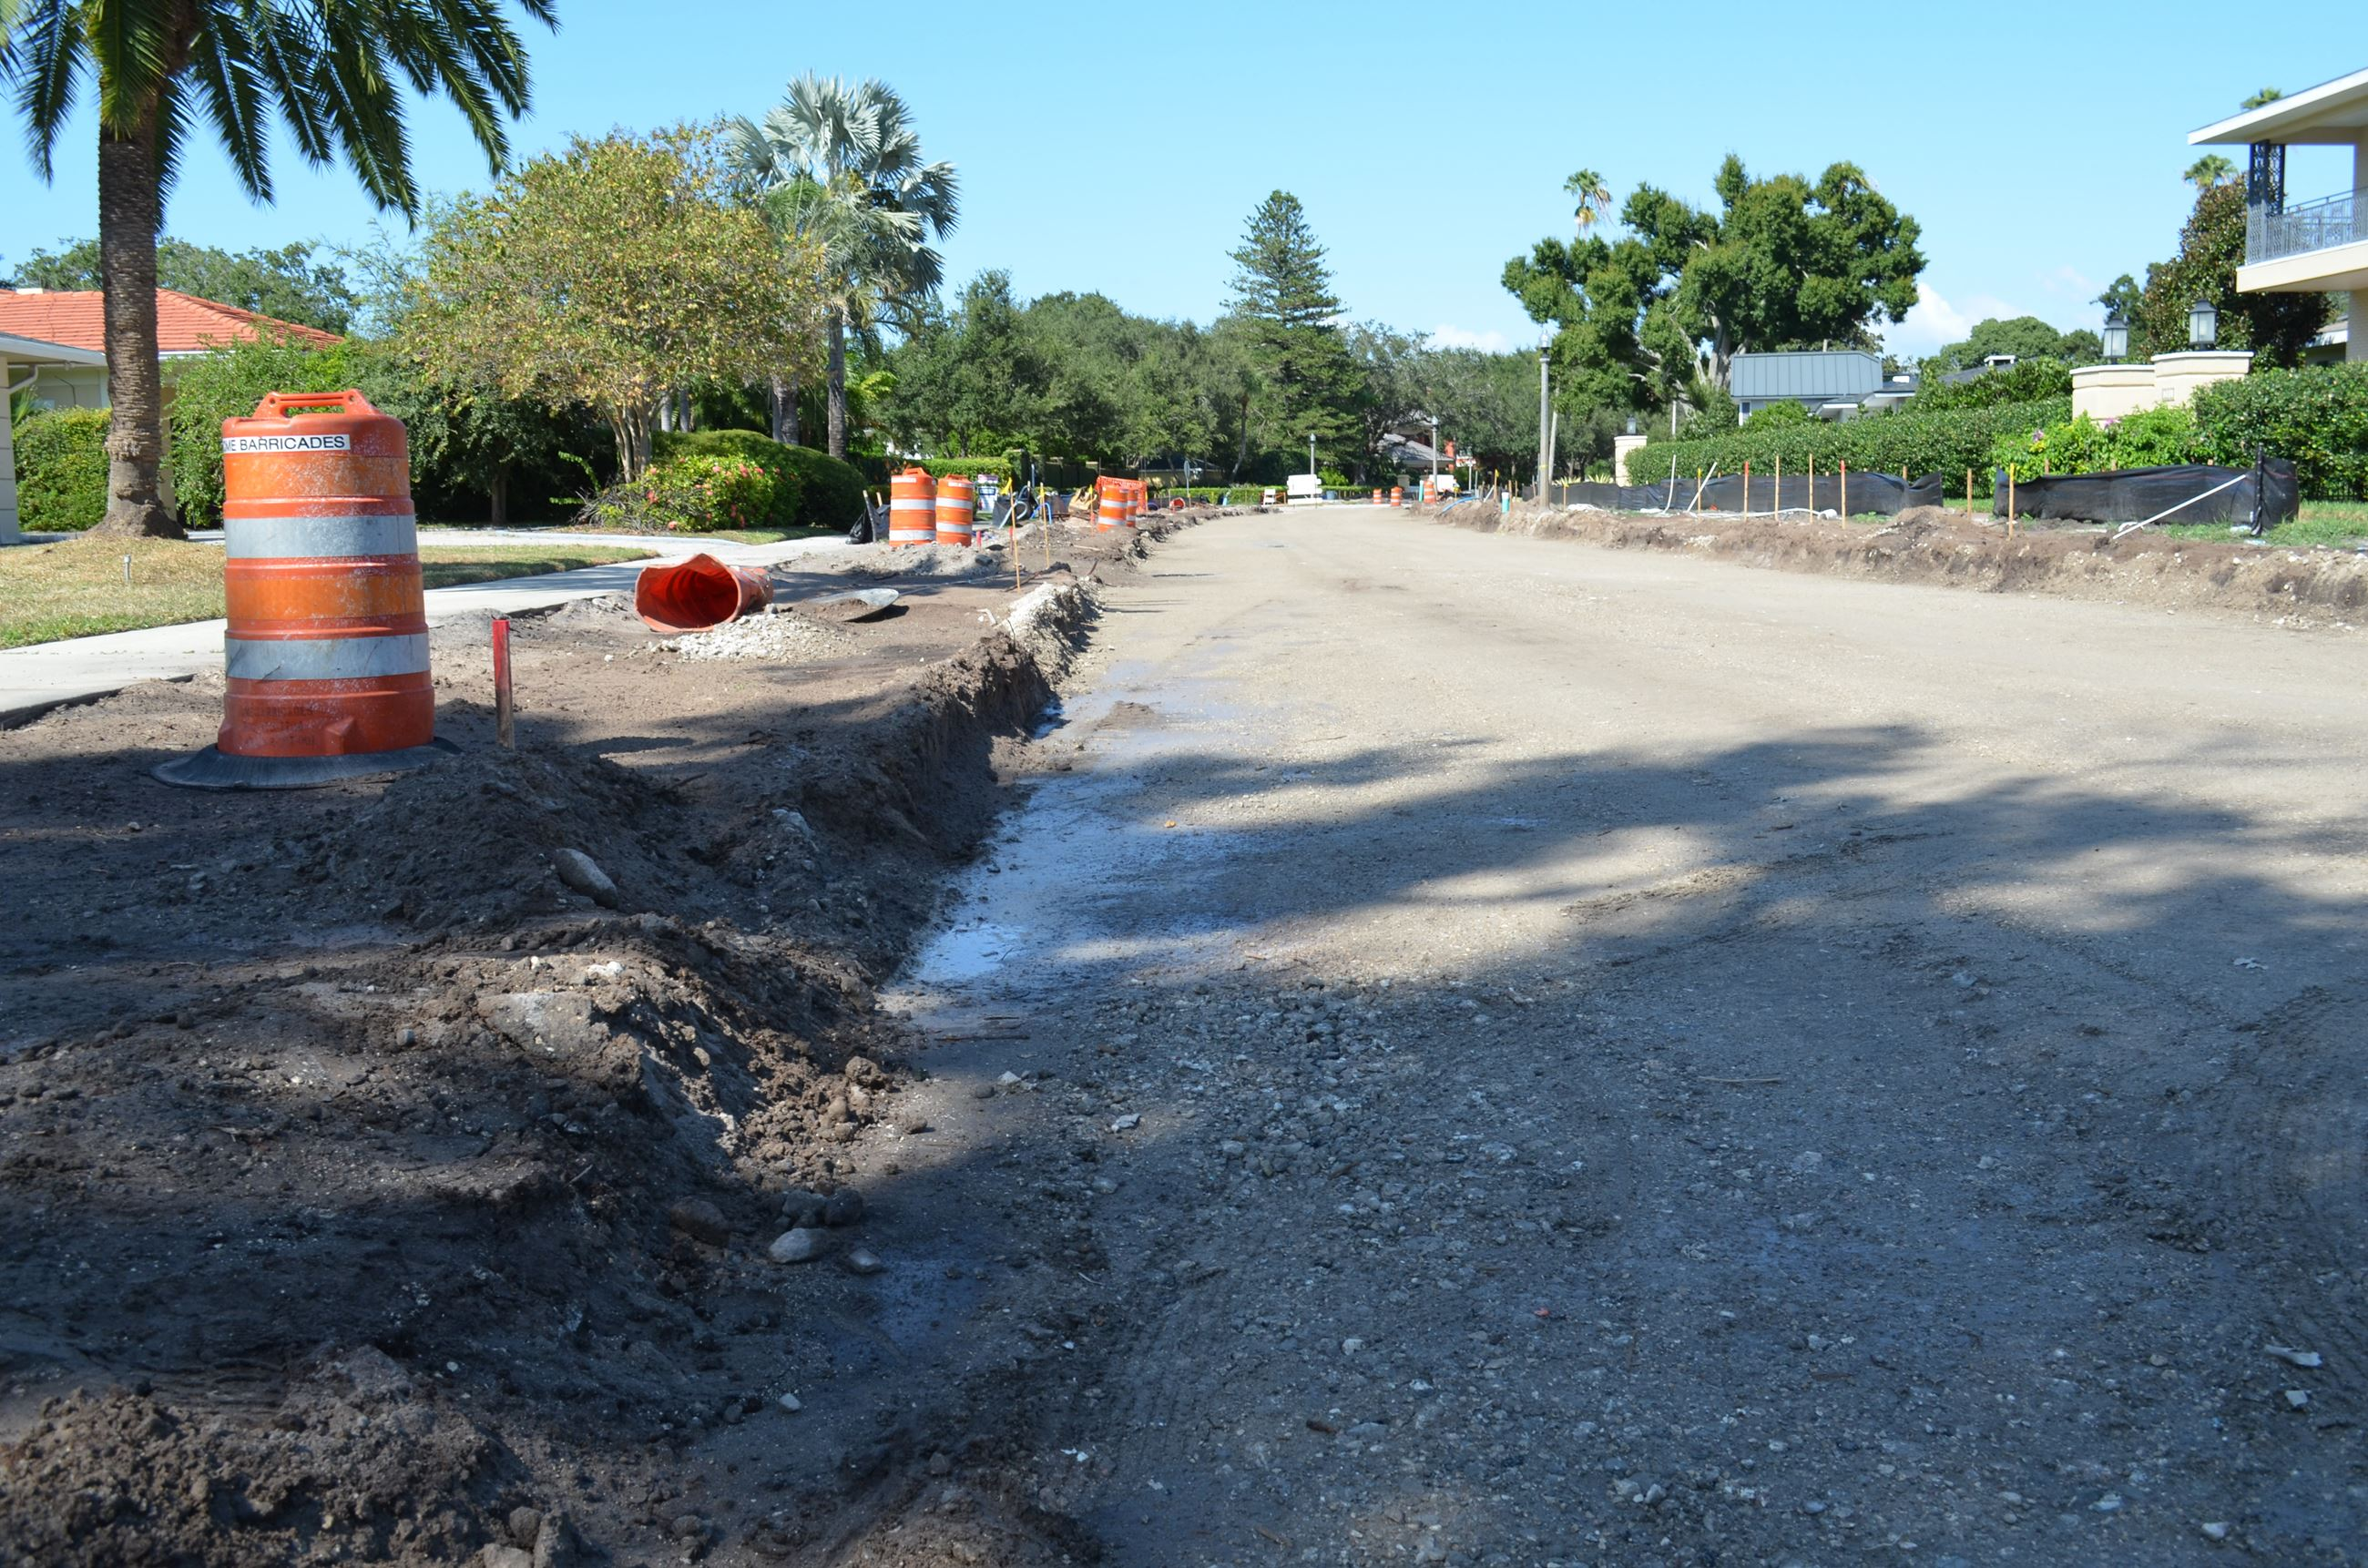 A view of Palmetto Road where road base and curbs are removed and dirt is in its place